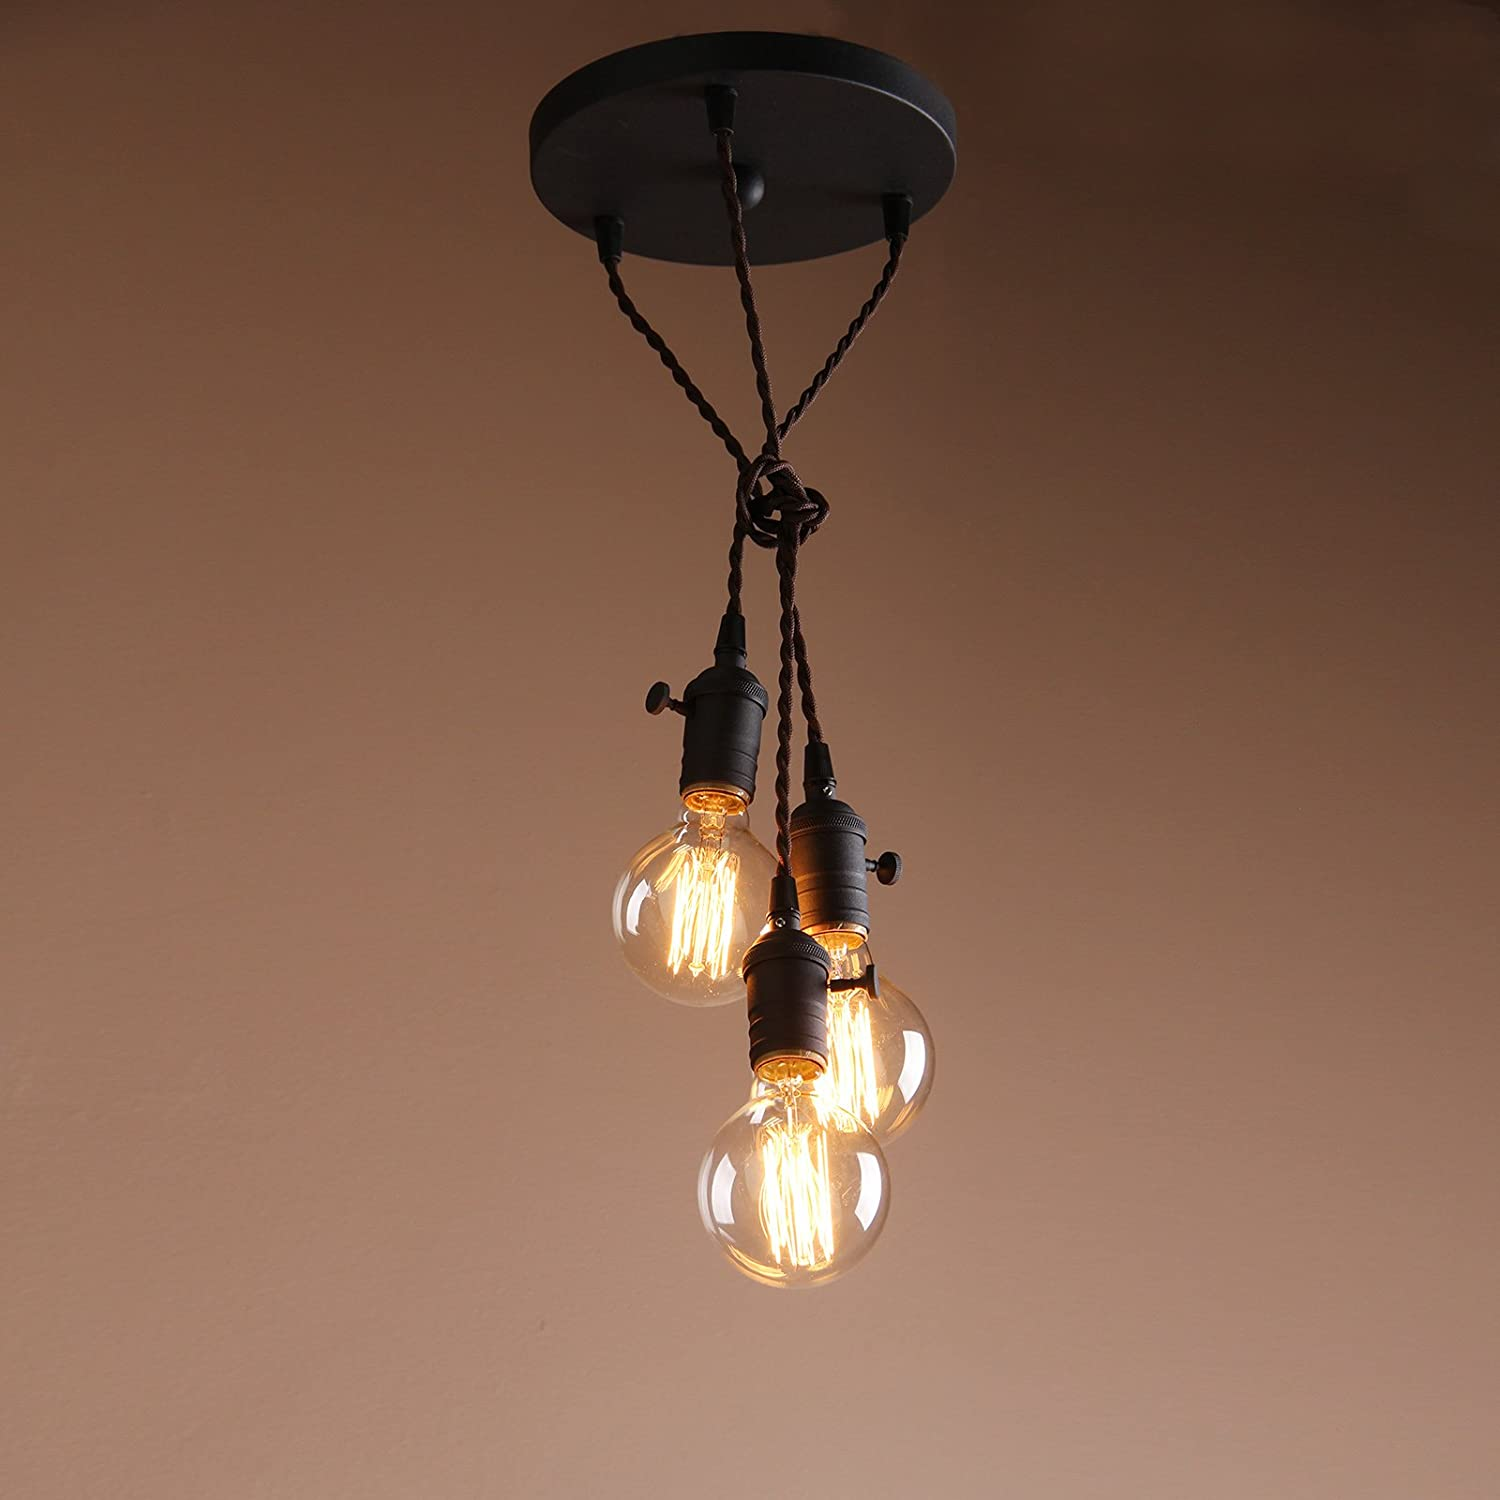 factory bronze product steampunk chandelier suspended lamp light bulb